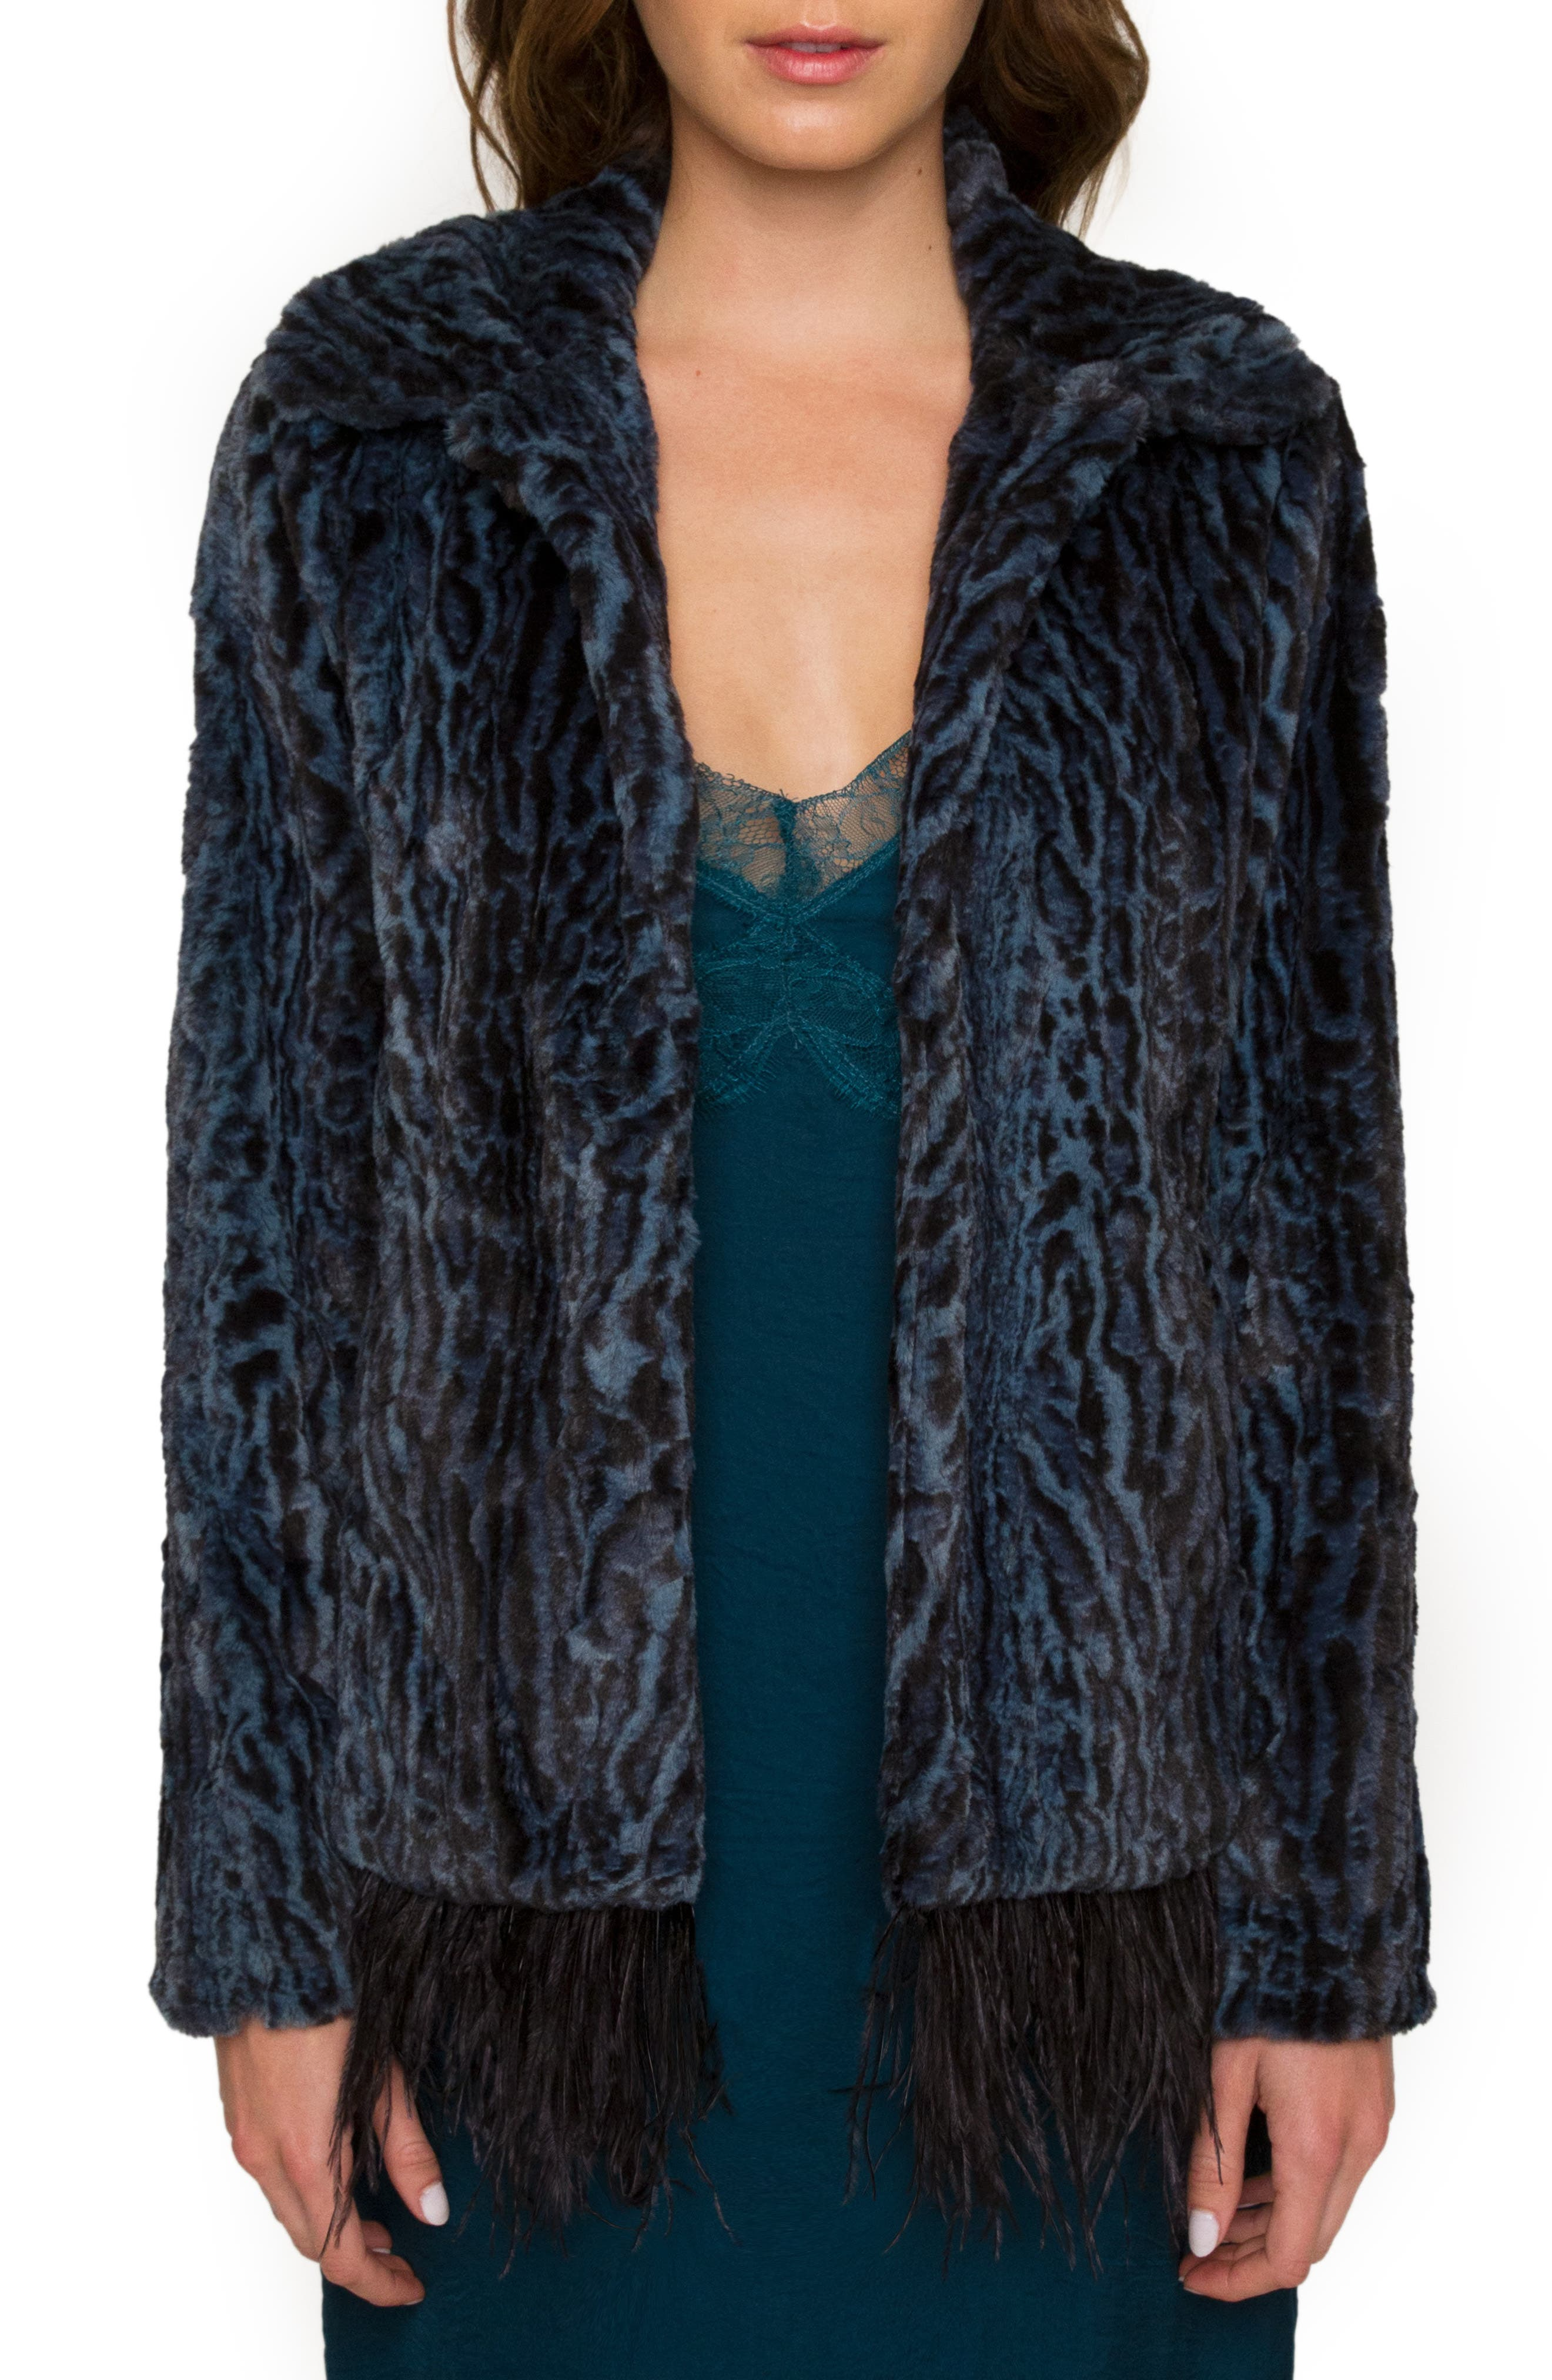 Main Image - Willow & Clay Animal Print Faux Fur Jacket